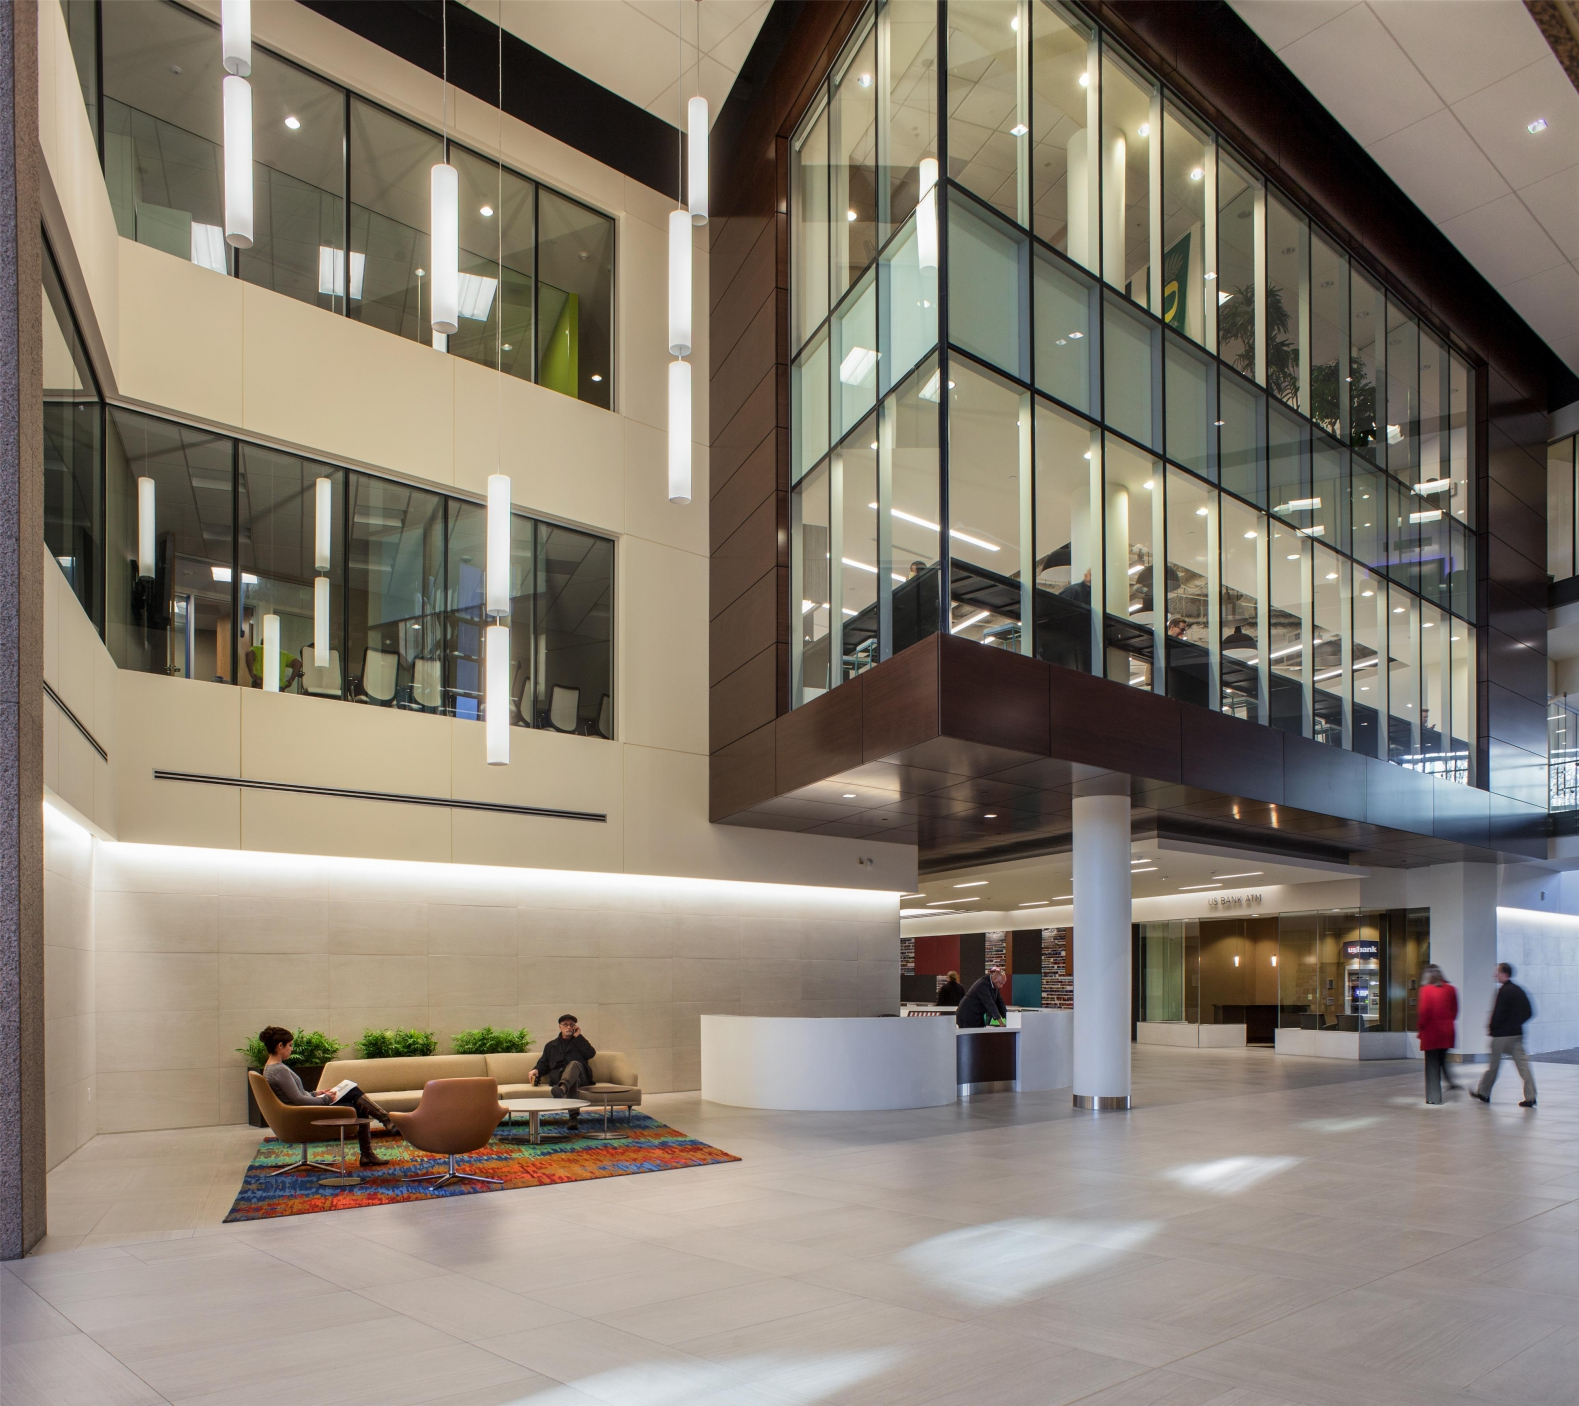 Us Bancorp Plaza Renovation Gbd Architects Portland Oregon